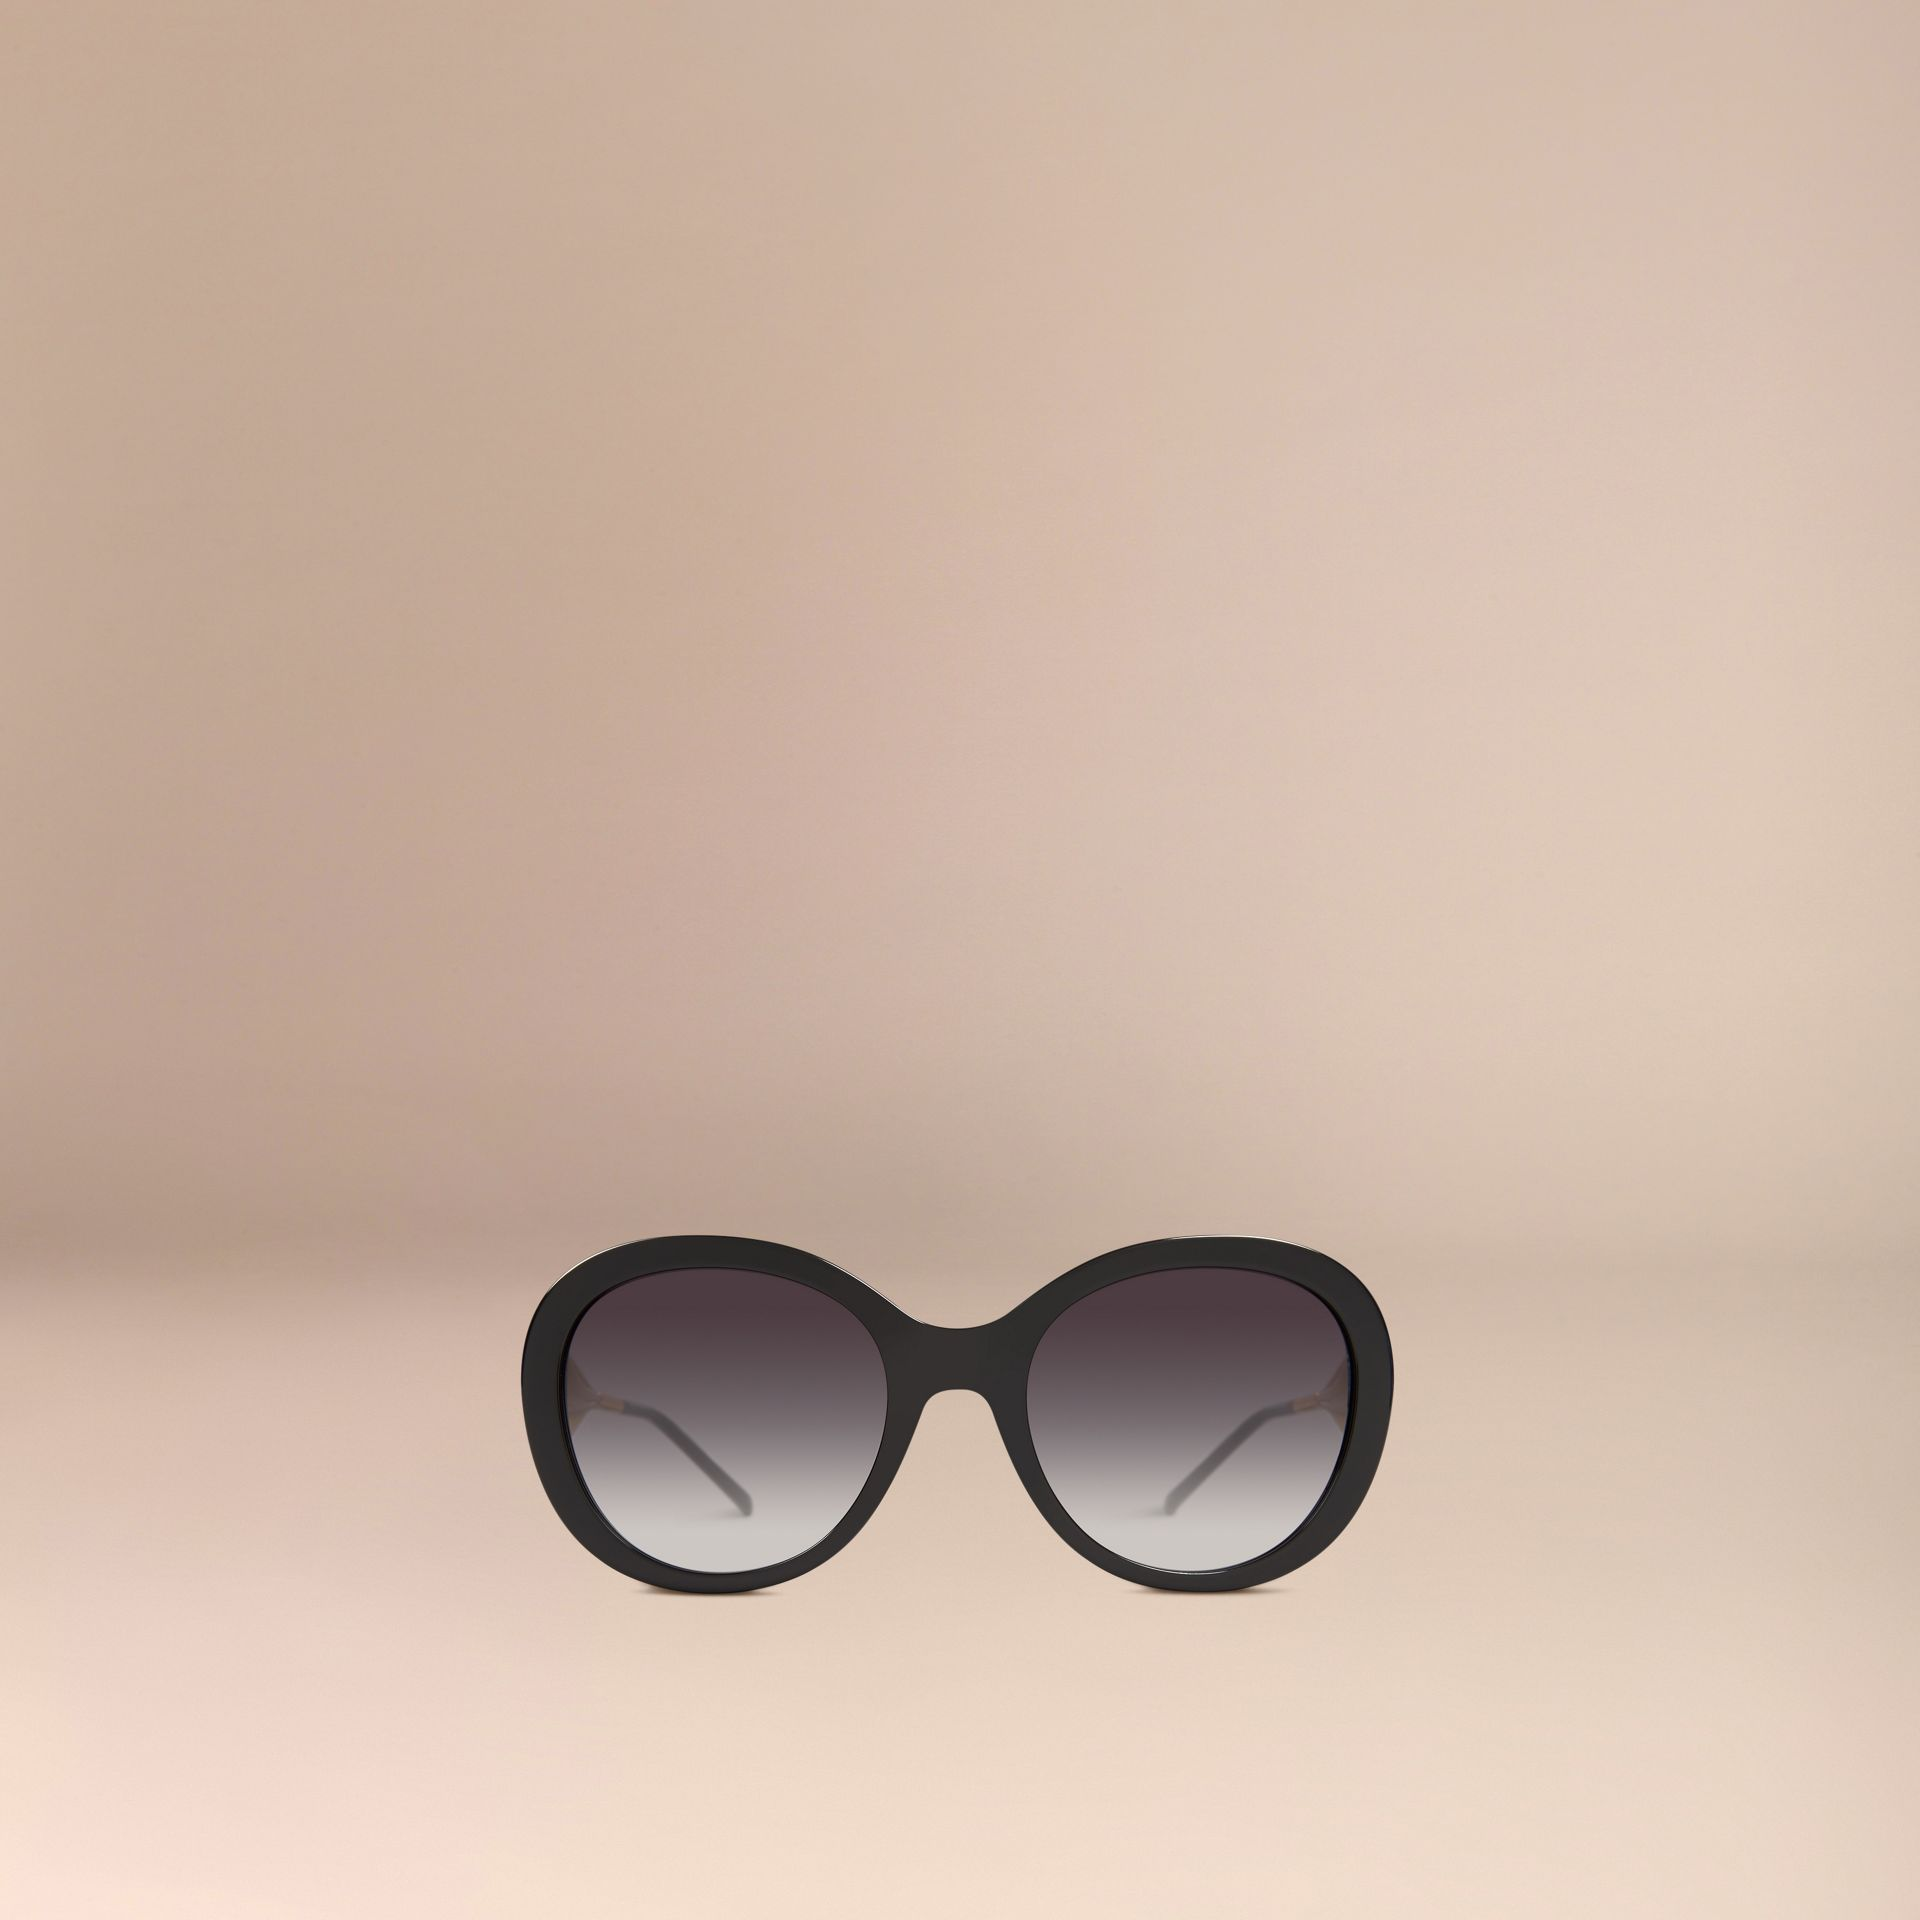 Gabardine Collection Oversize Round Frame Sunglasses in Black - Women | Burberry - gallery image 2